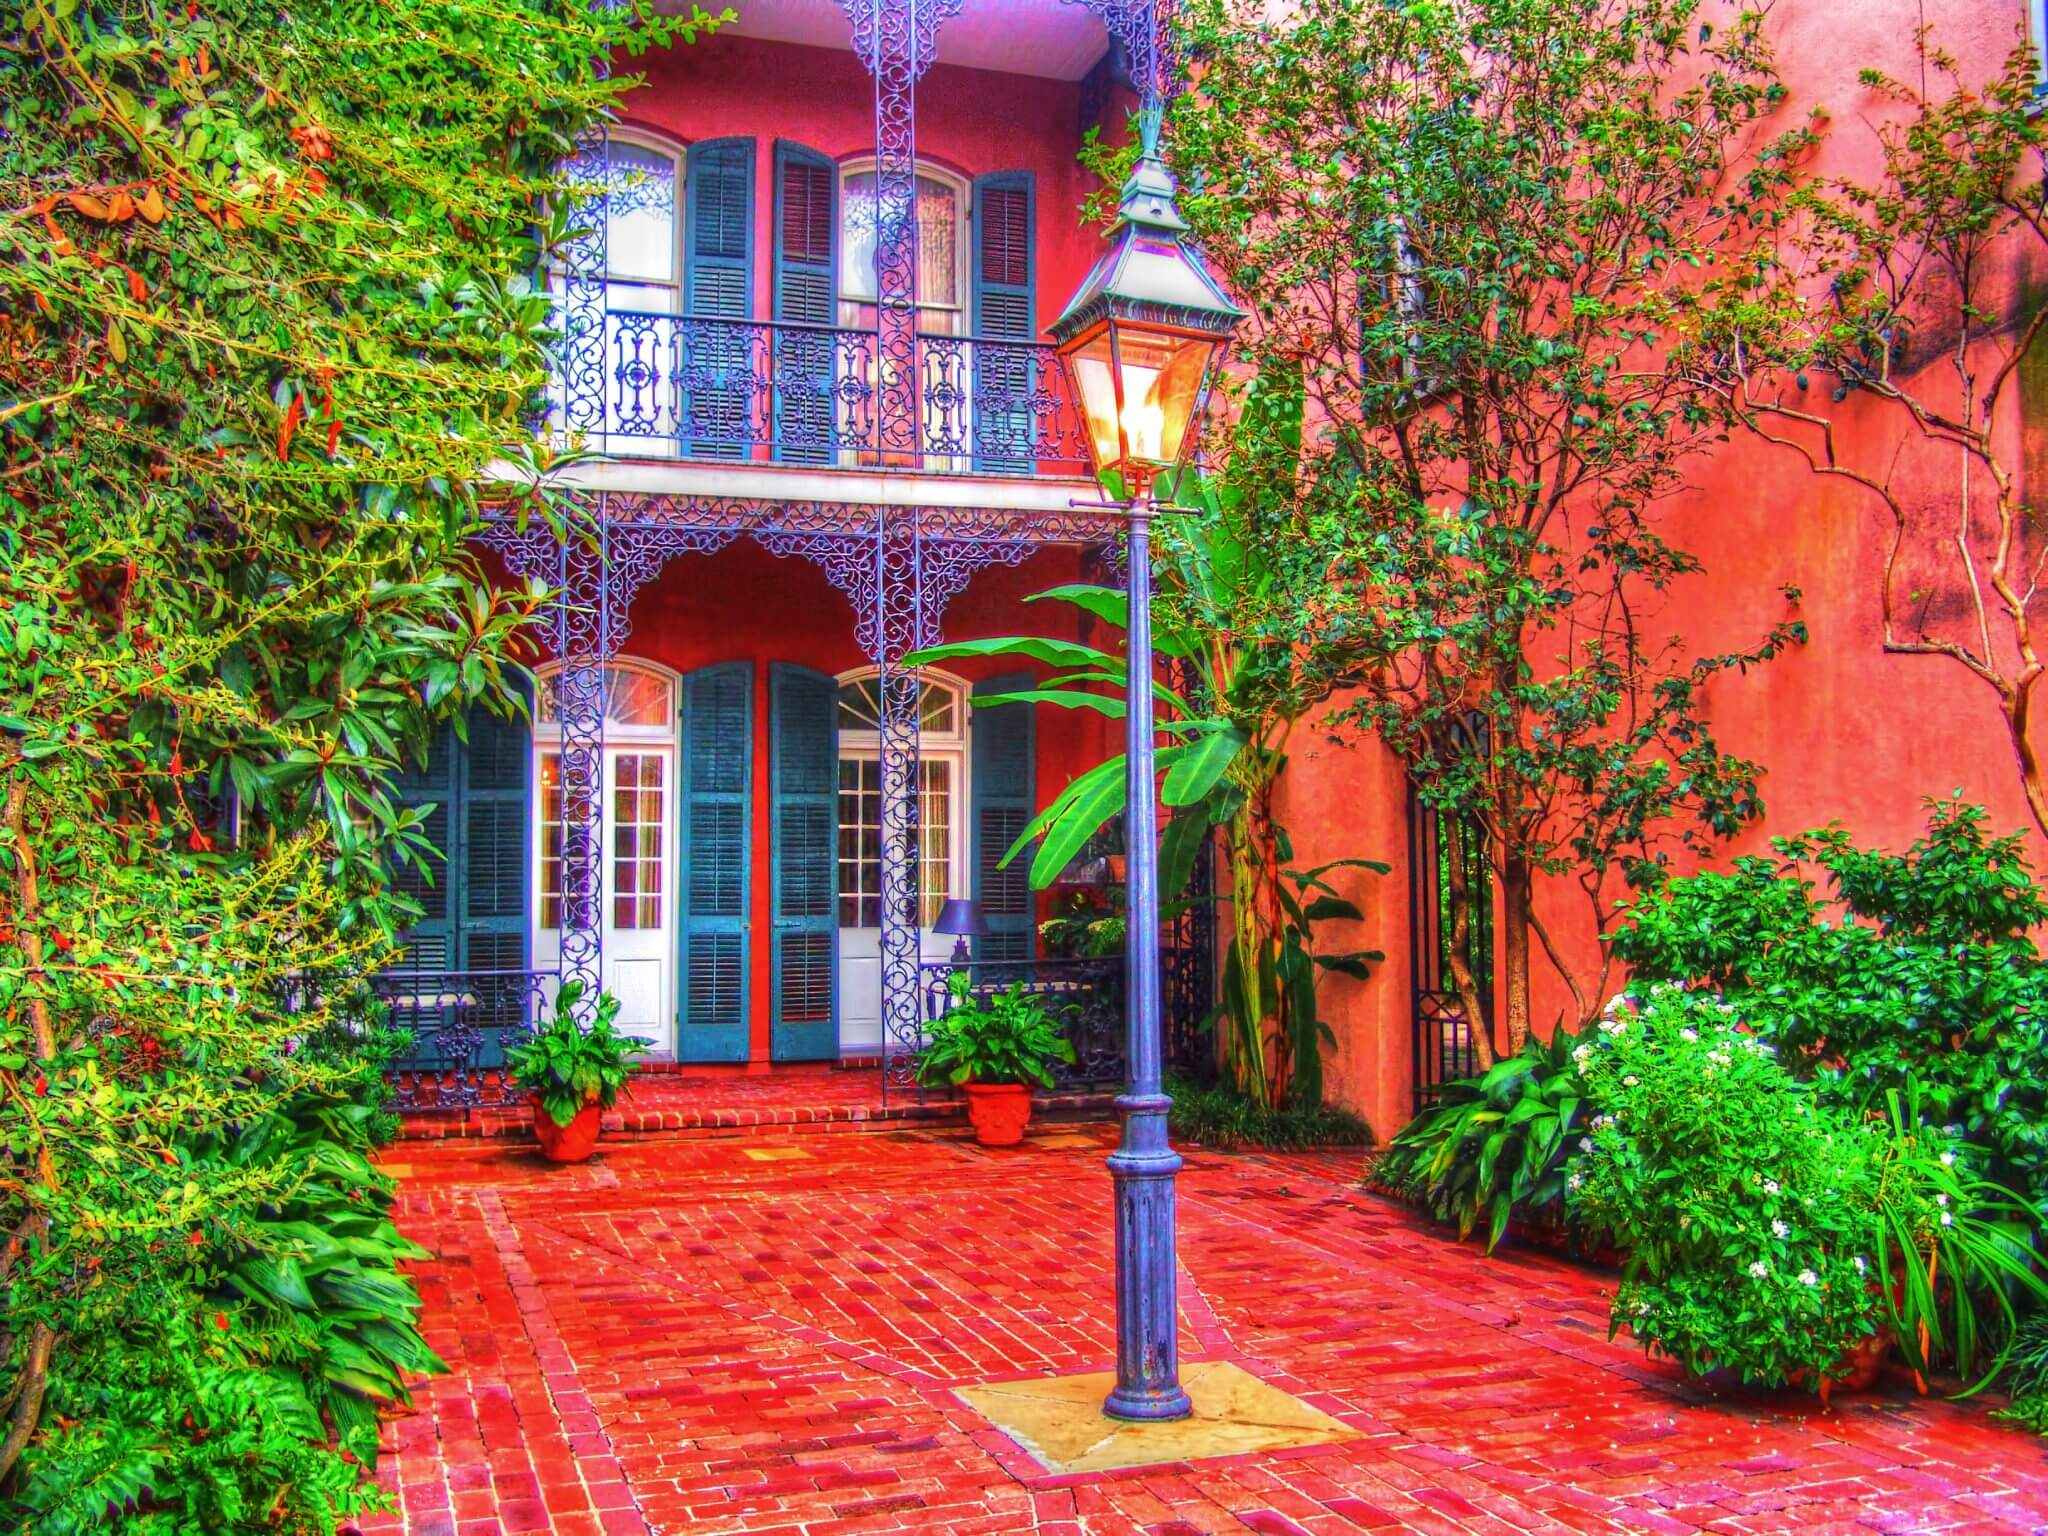 Colorful courtyard by Jim Sweida at Blue Morning Gallery